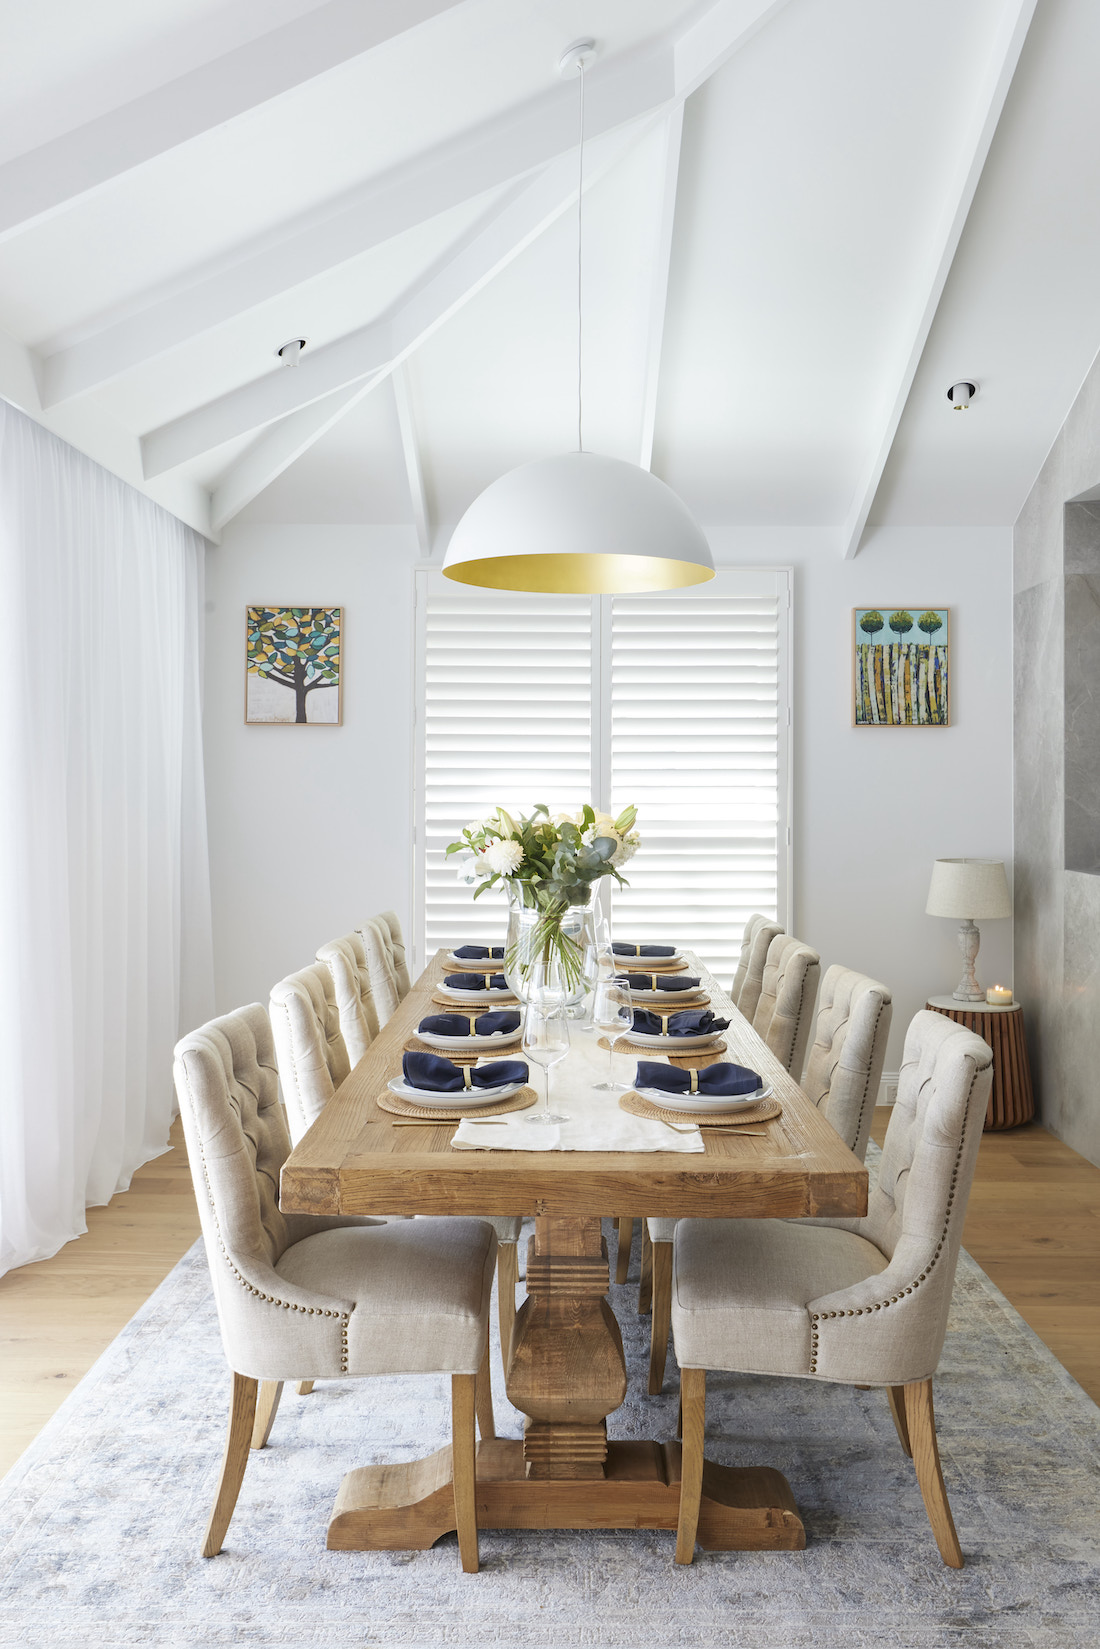 White dome light in raked ceiling above dining table